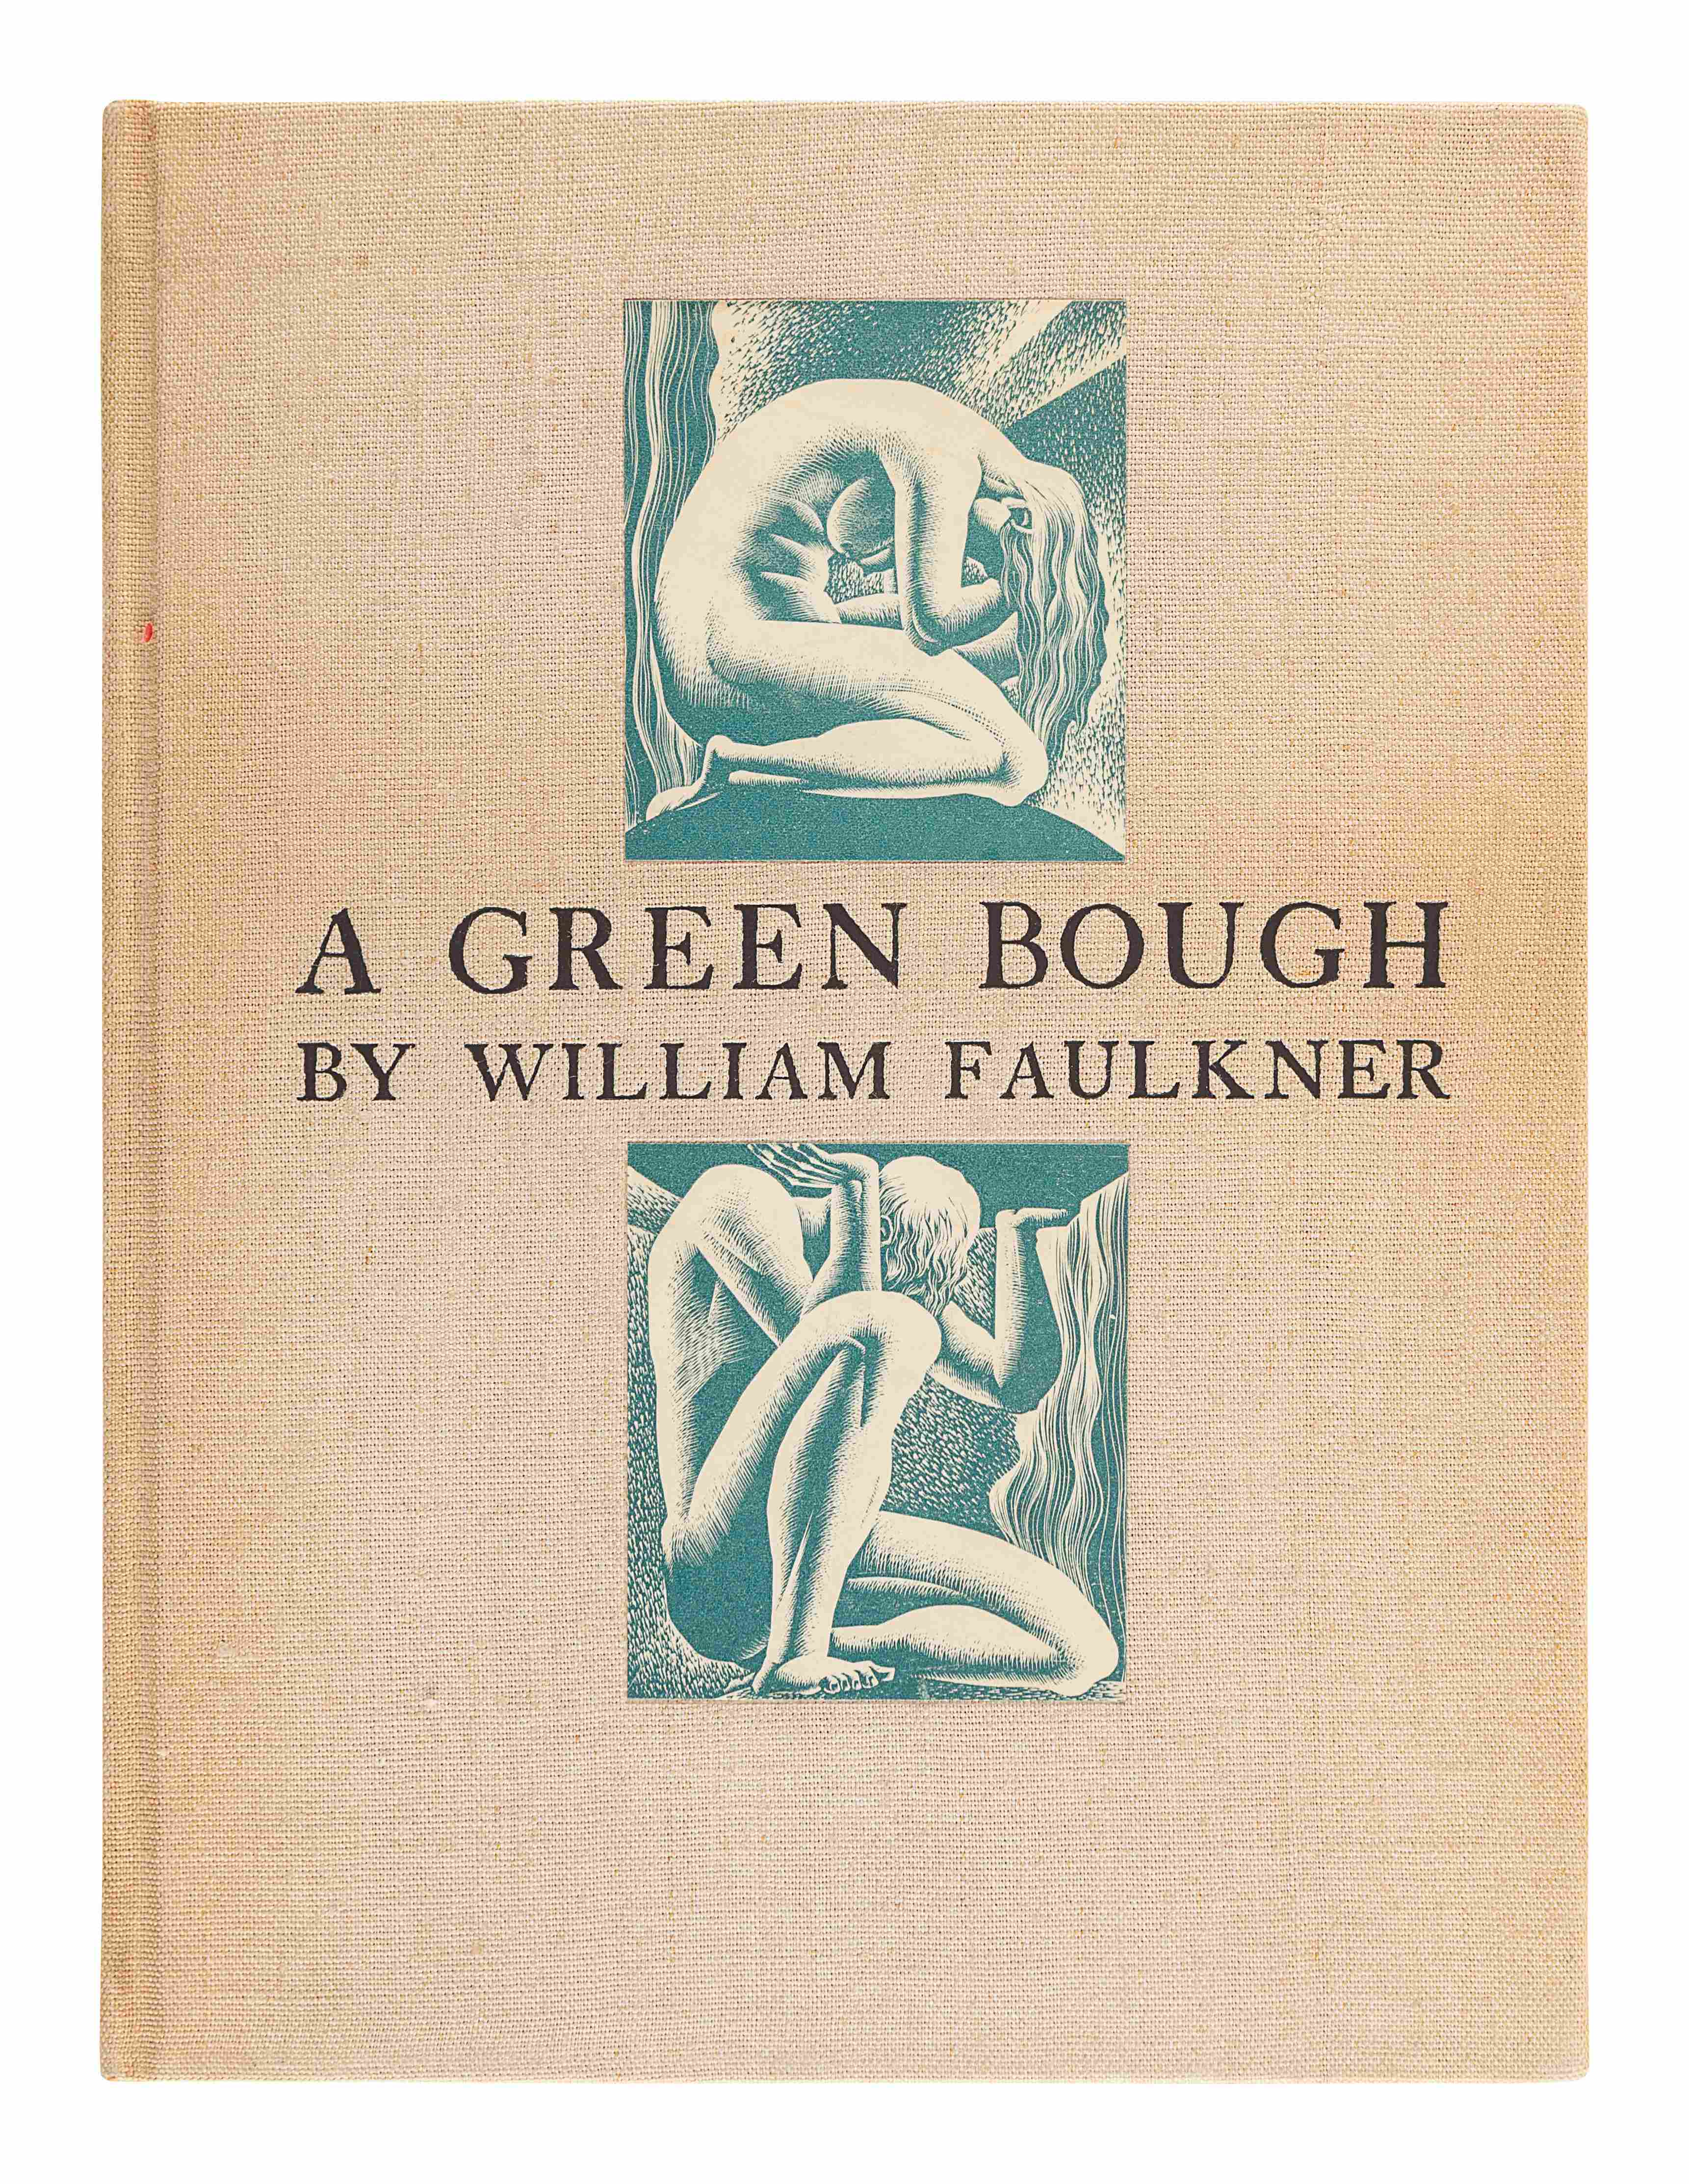 FAULKNER, William. A Green Bough. New York: Harrison Smith and Robert Haas, 1933. - Image 3 of 3